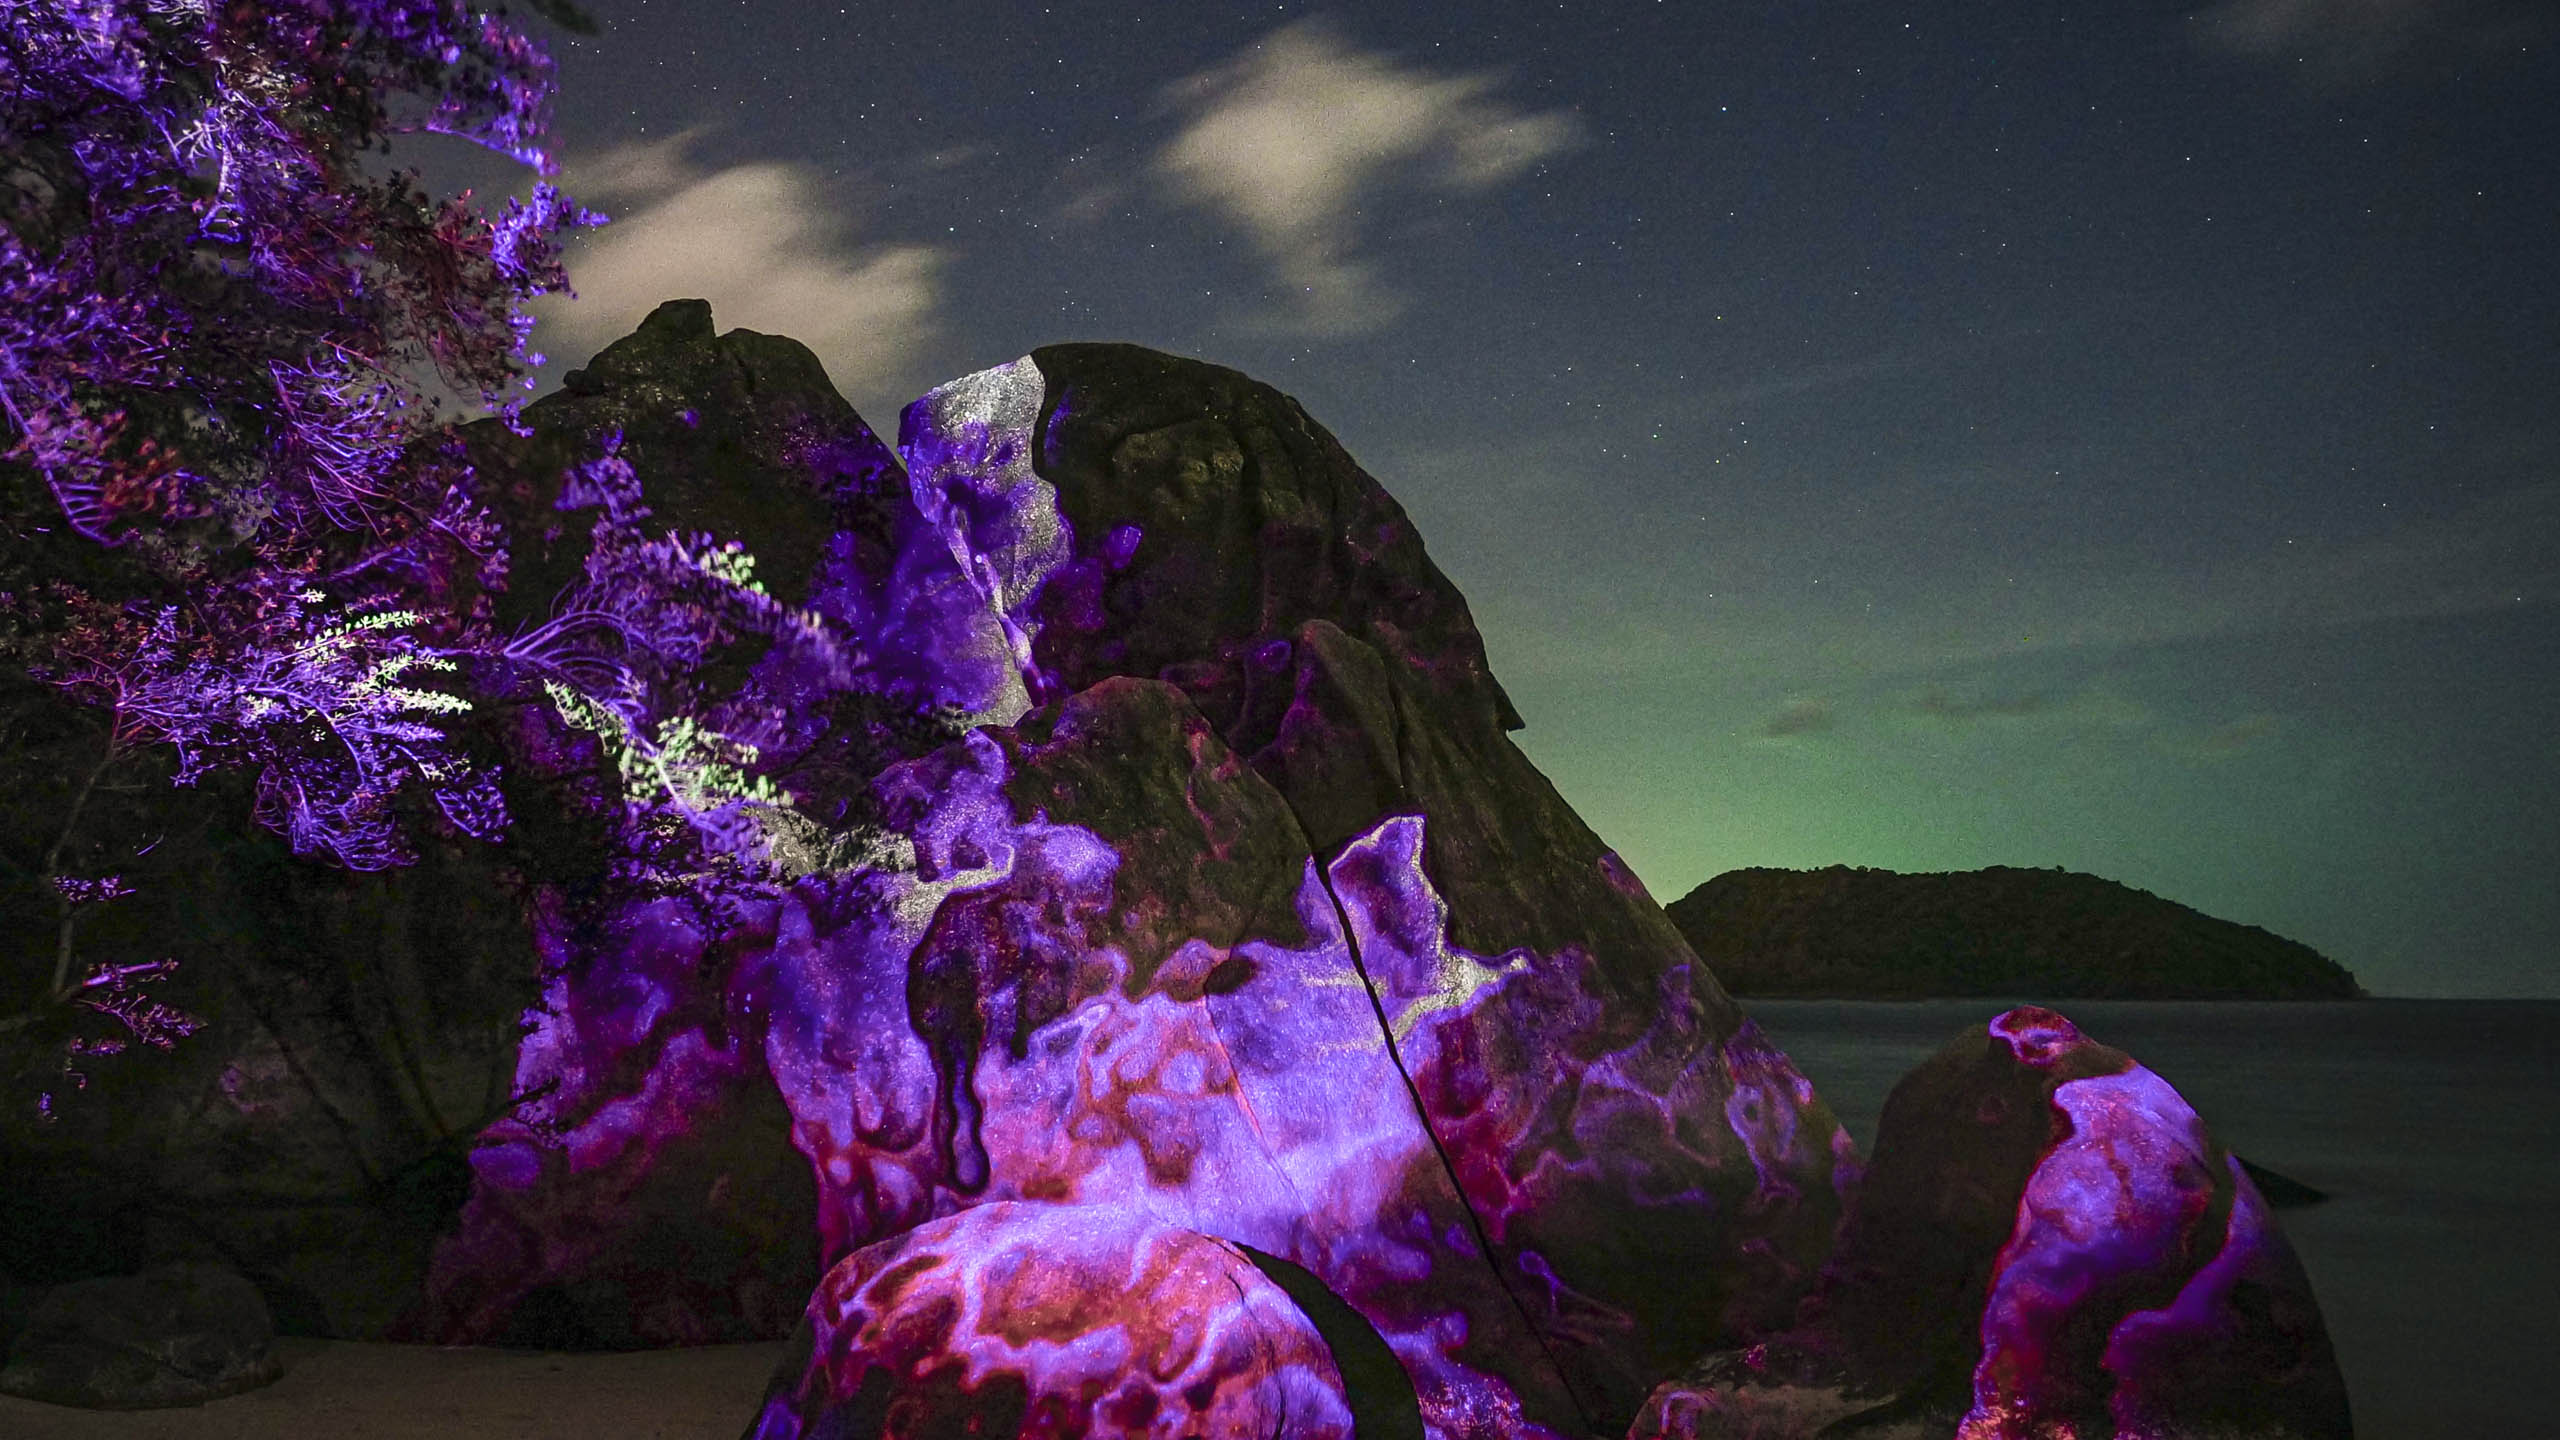 light art, 3d projection mapping by philipp frank. Located on a rock at the beach